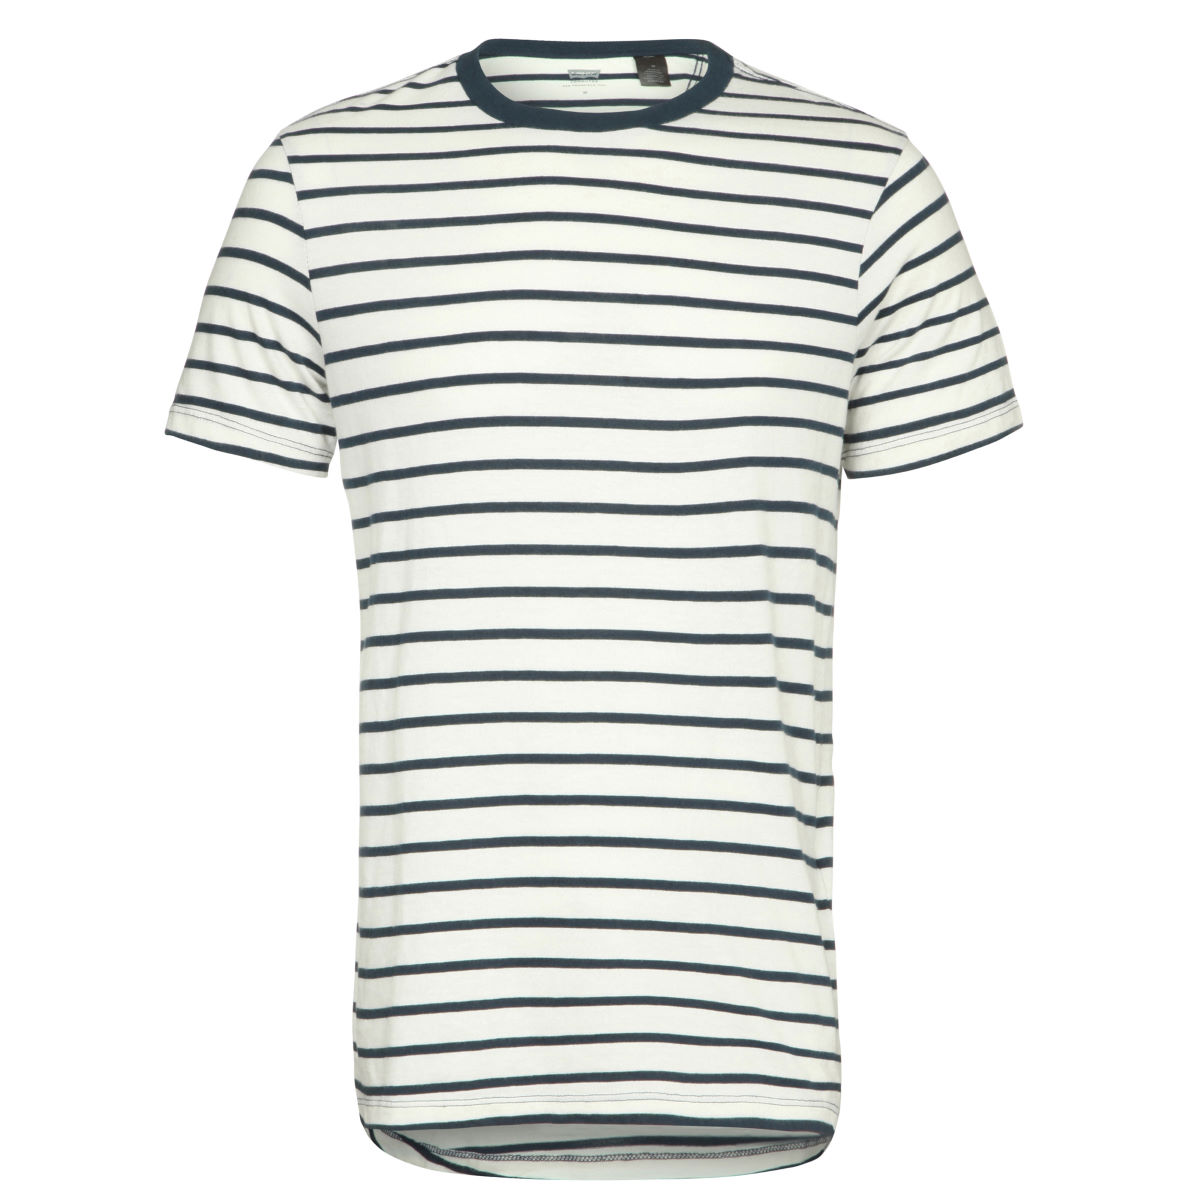 Maillot Levi's (lot de deux) - S Cloud Dancer T-shirts